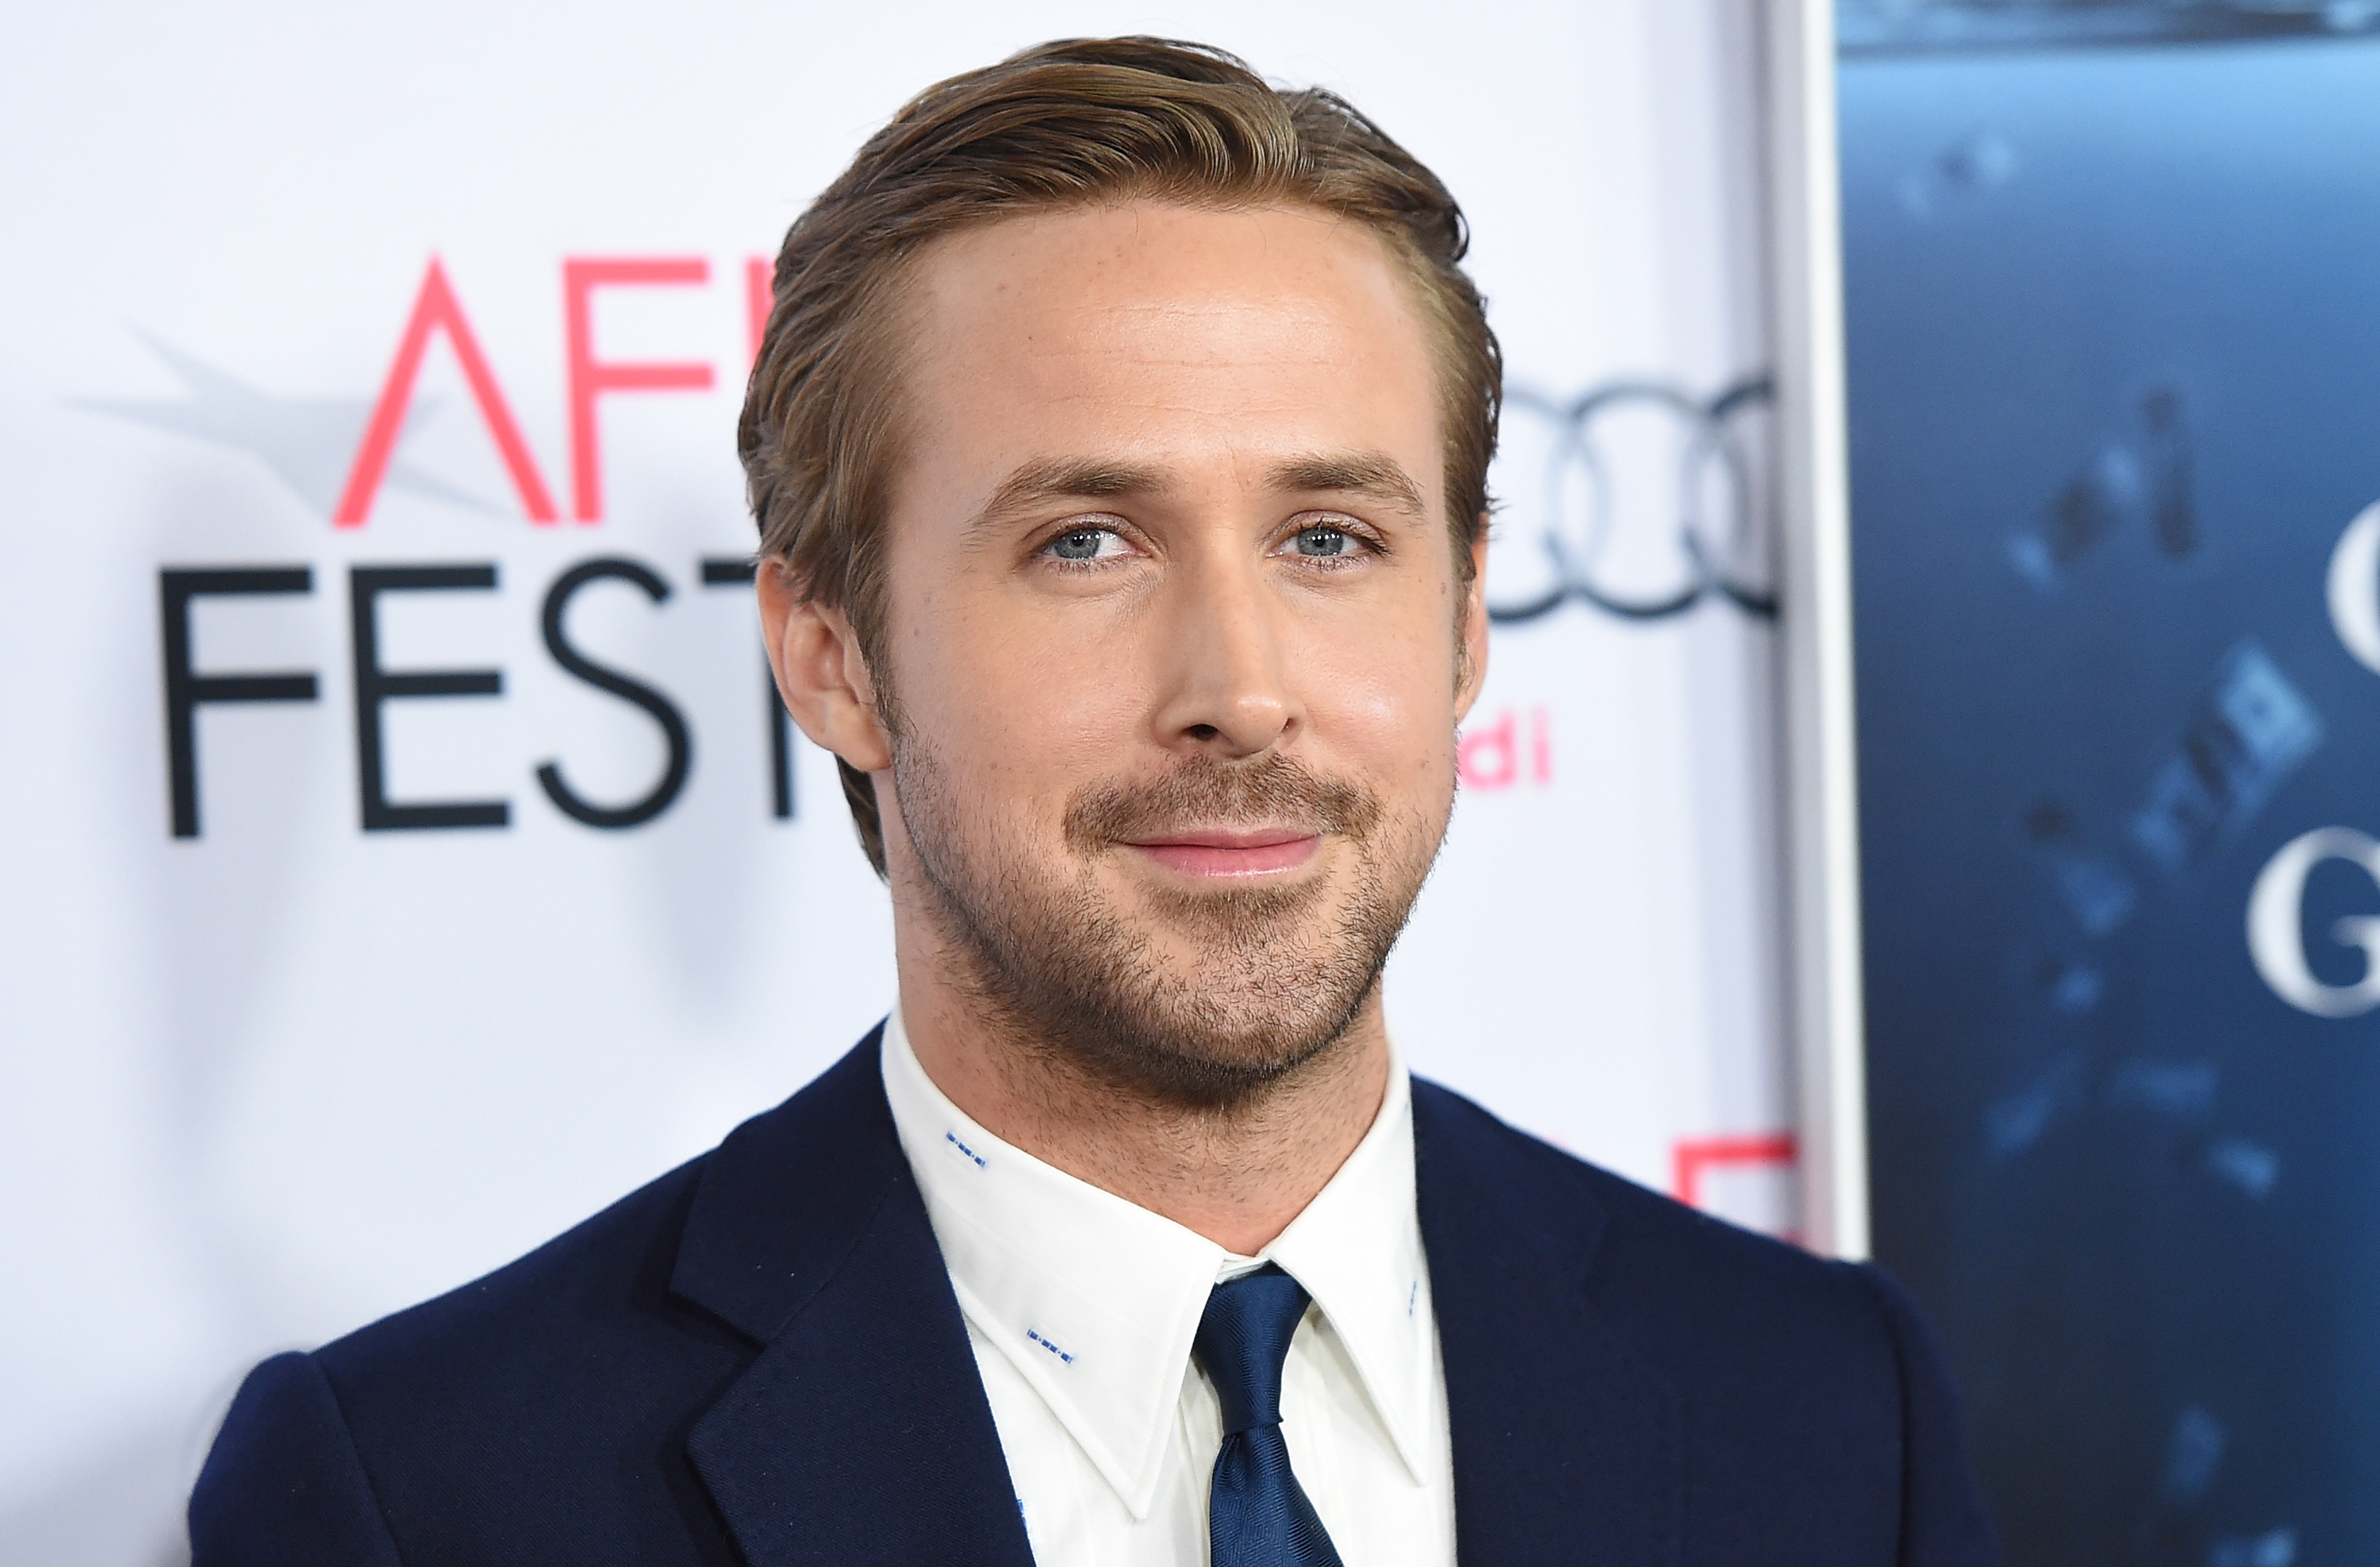 Ryan Gosling says Blade Runner sequel is 'a huge responsibility'